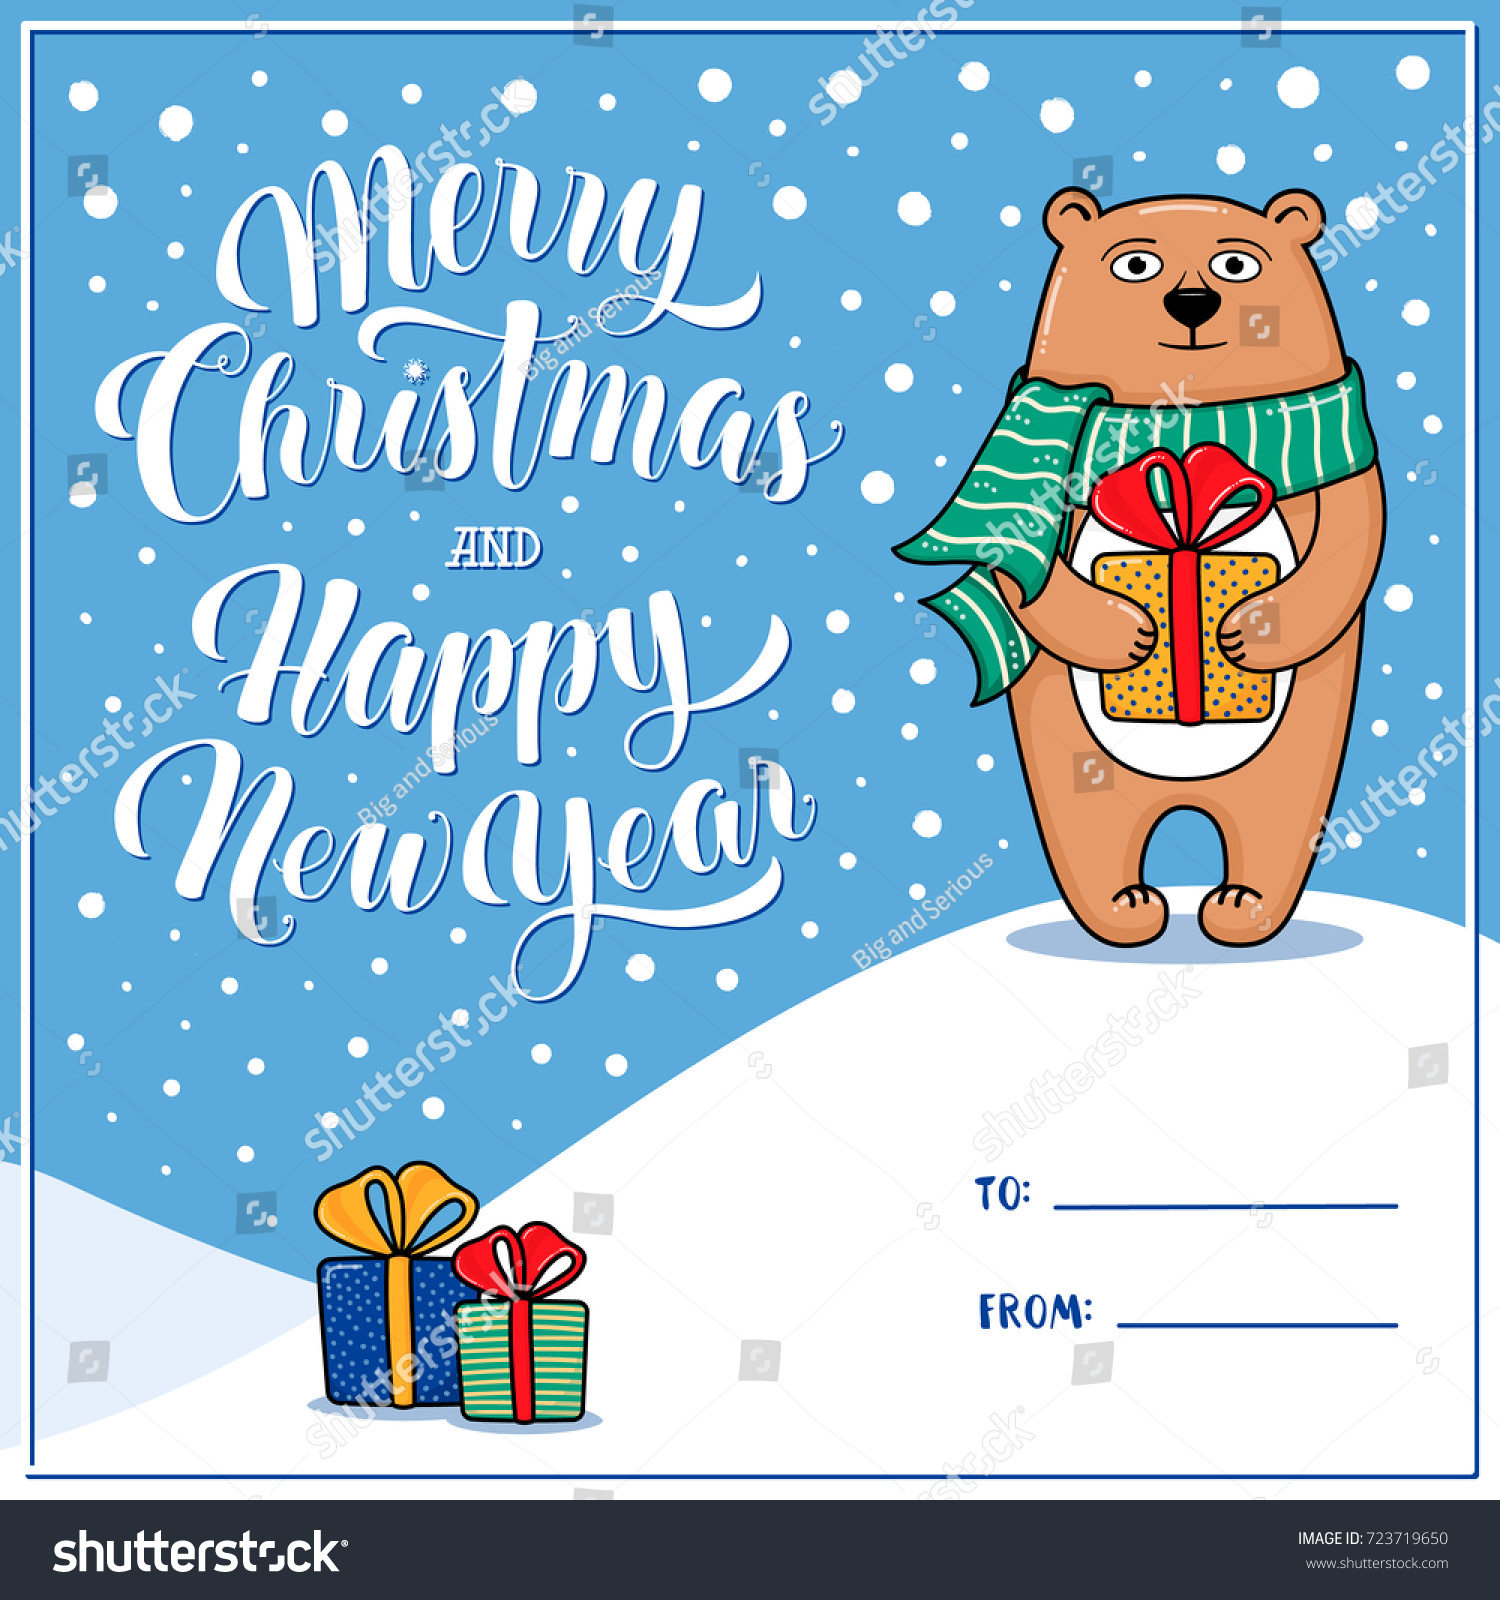 merry christmas and happy new year greeting card with raccoon gifts snow lettering place for signing to and from cartoon vector illustration